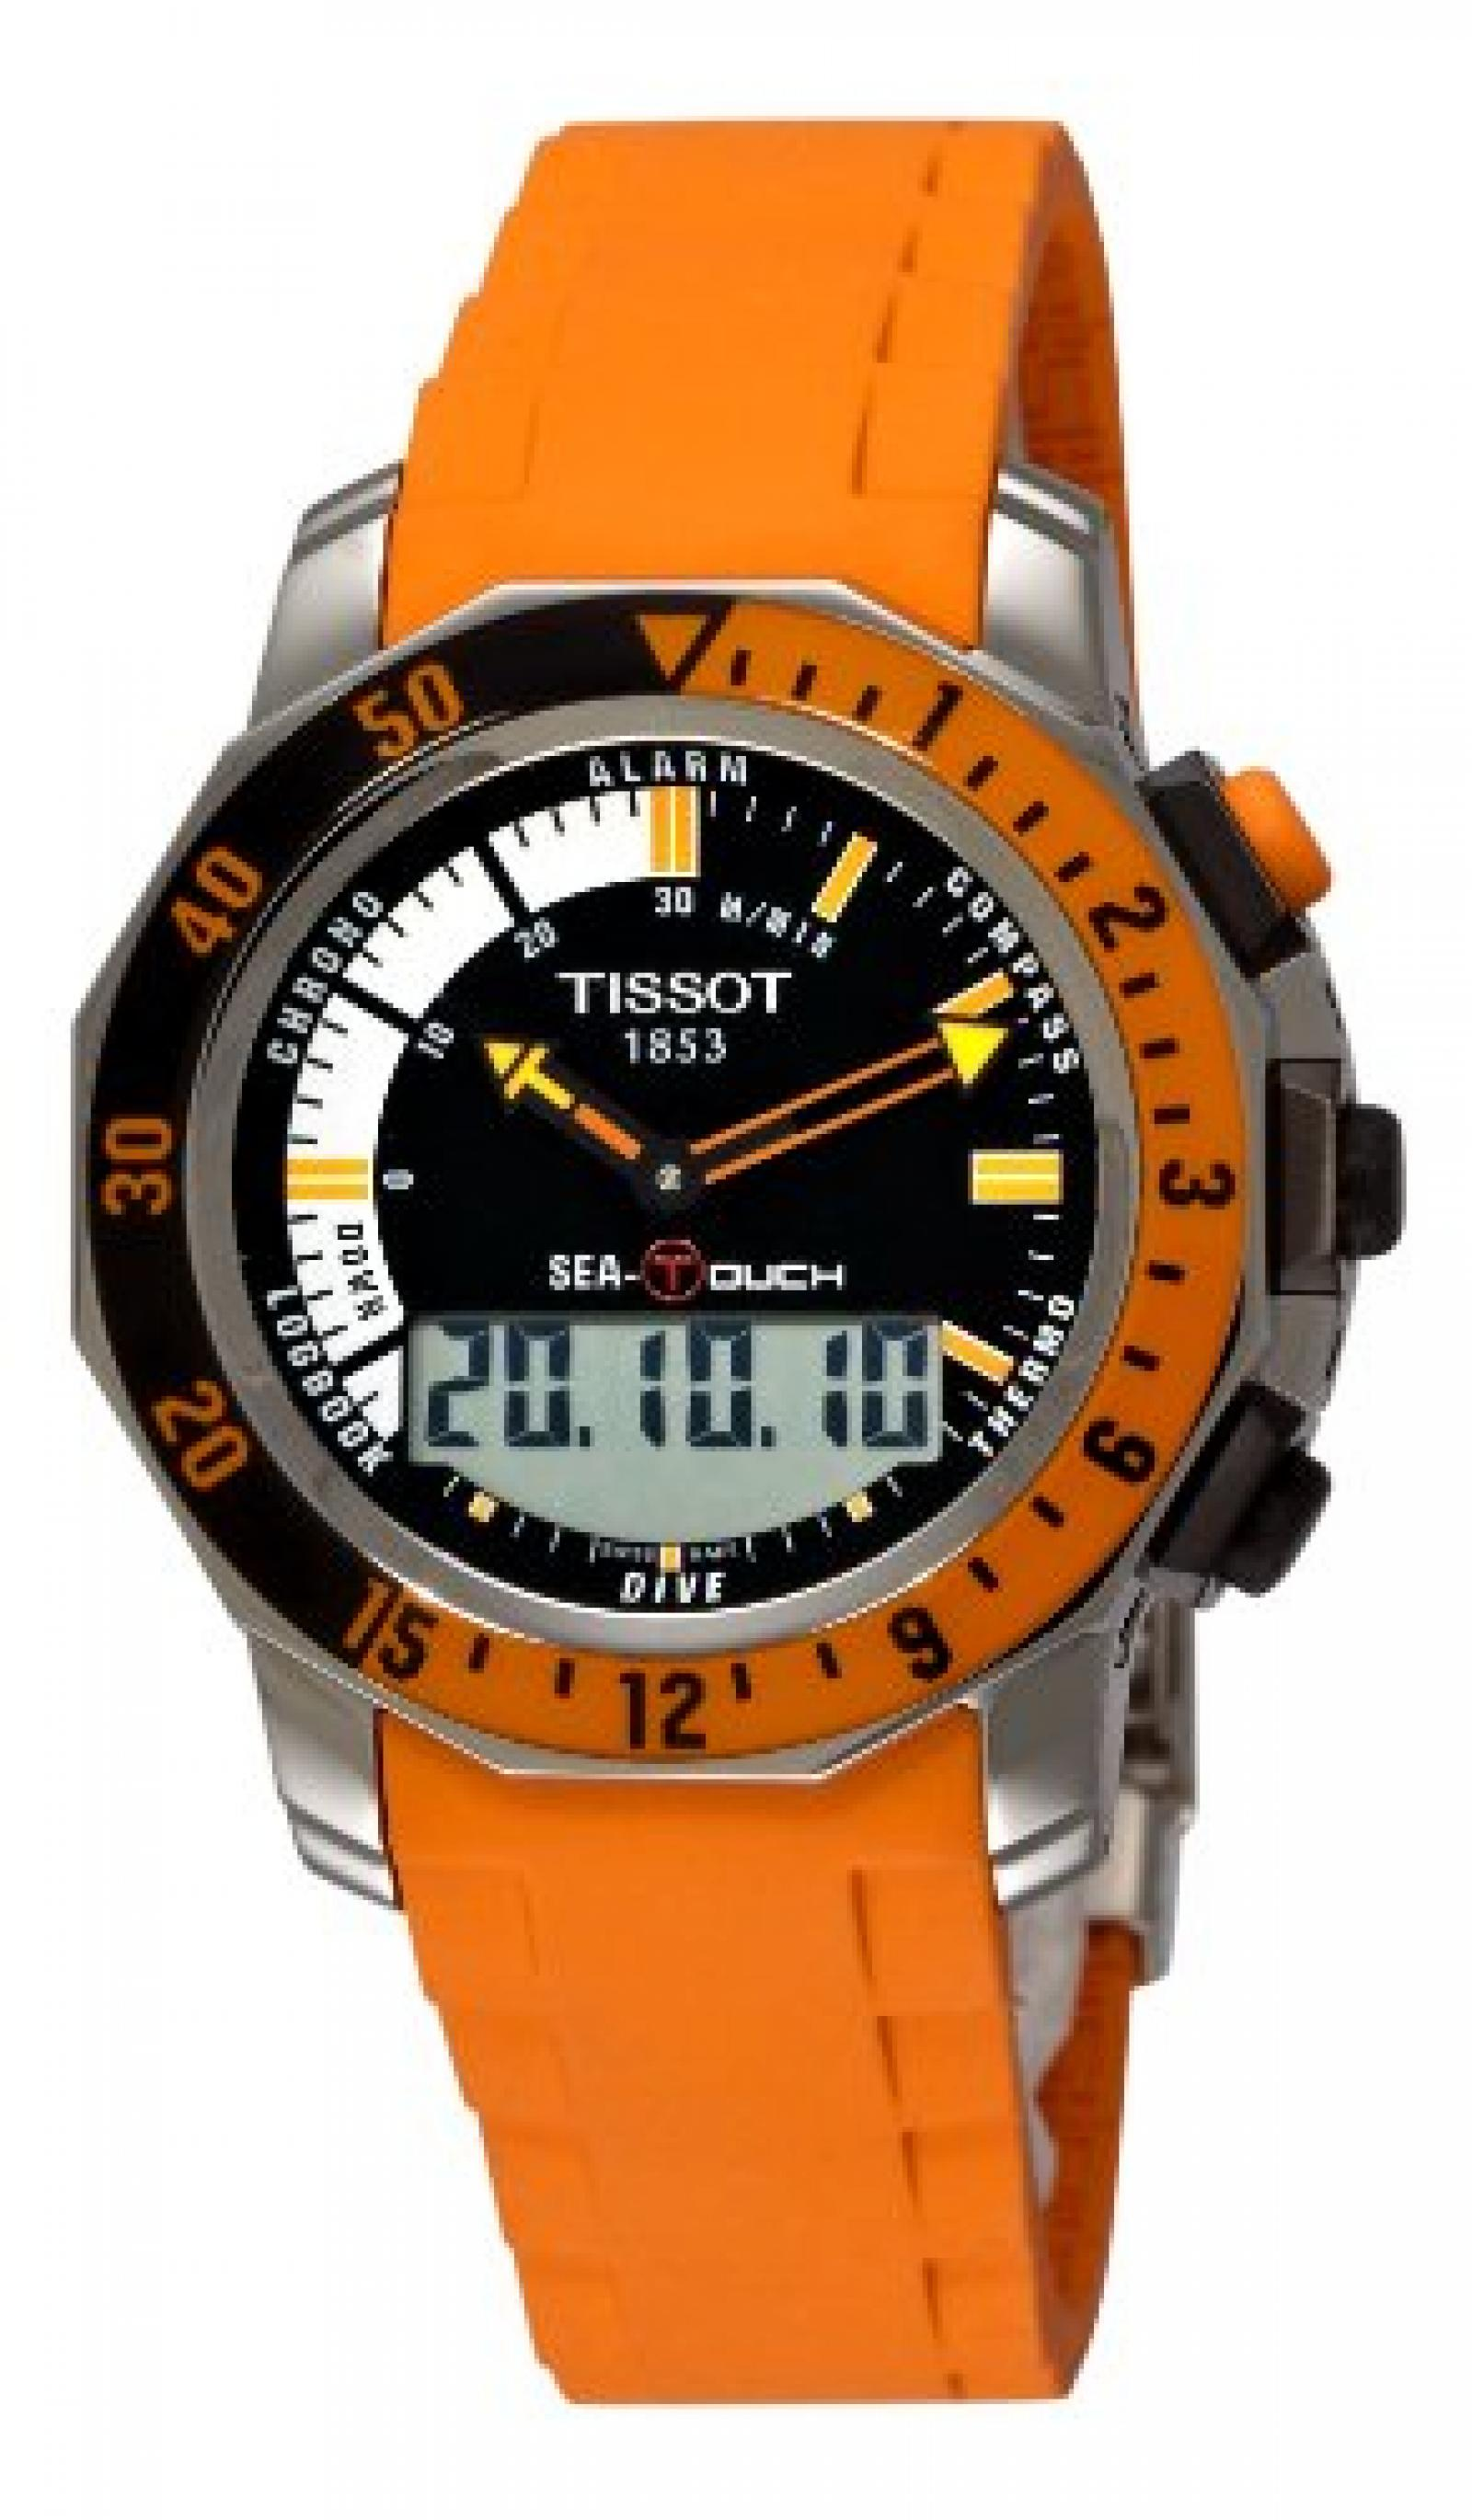 Tissot Herren-Armbanduhr XL Sea-Touch Analog - Digital Quarz Kautschuk T026.420.17.281.02